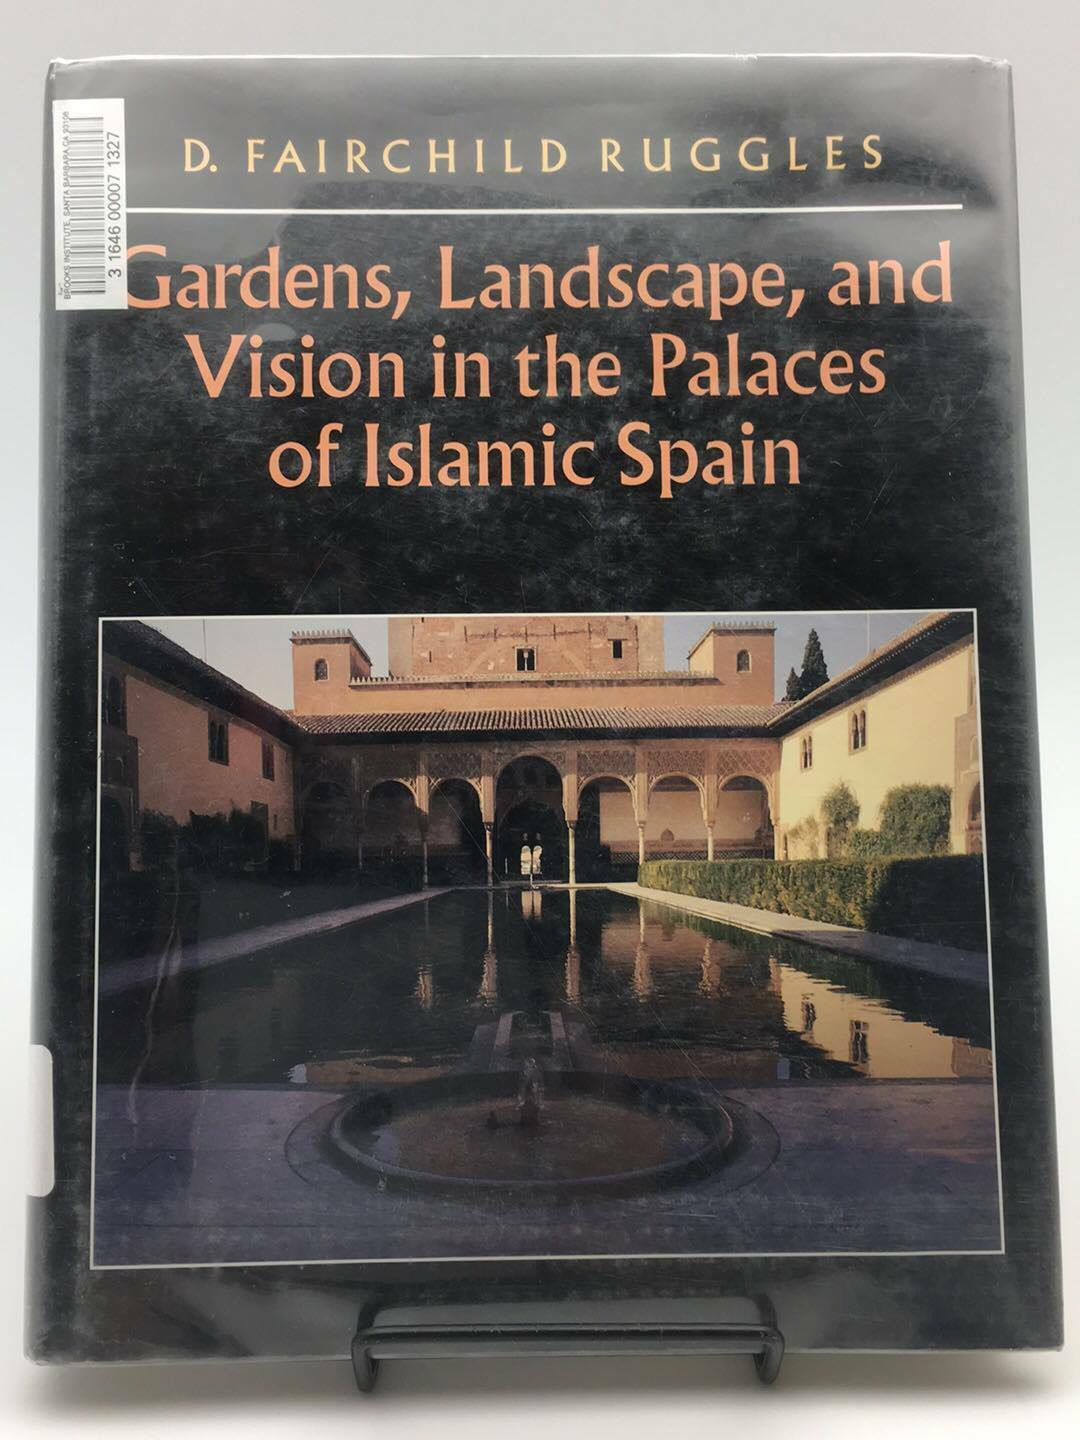 Gardens, Landscape, and Vision in the Palaces of Islamic Spain by D.  Fairchild Ruggles (2003, Paperback) | eBay